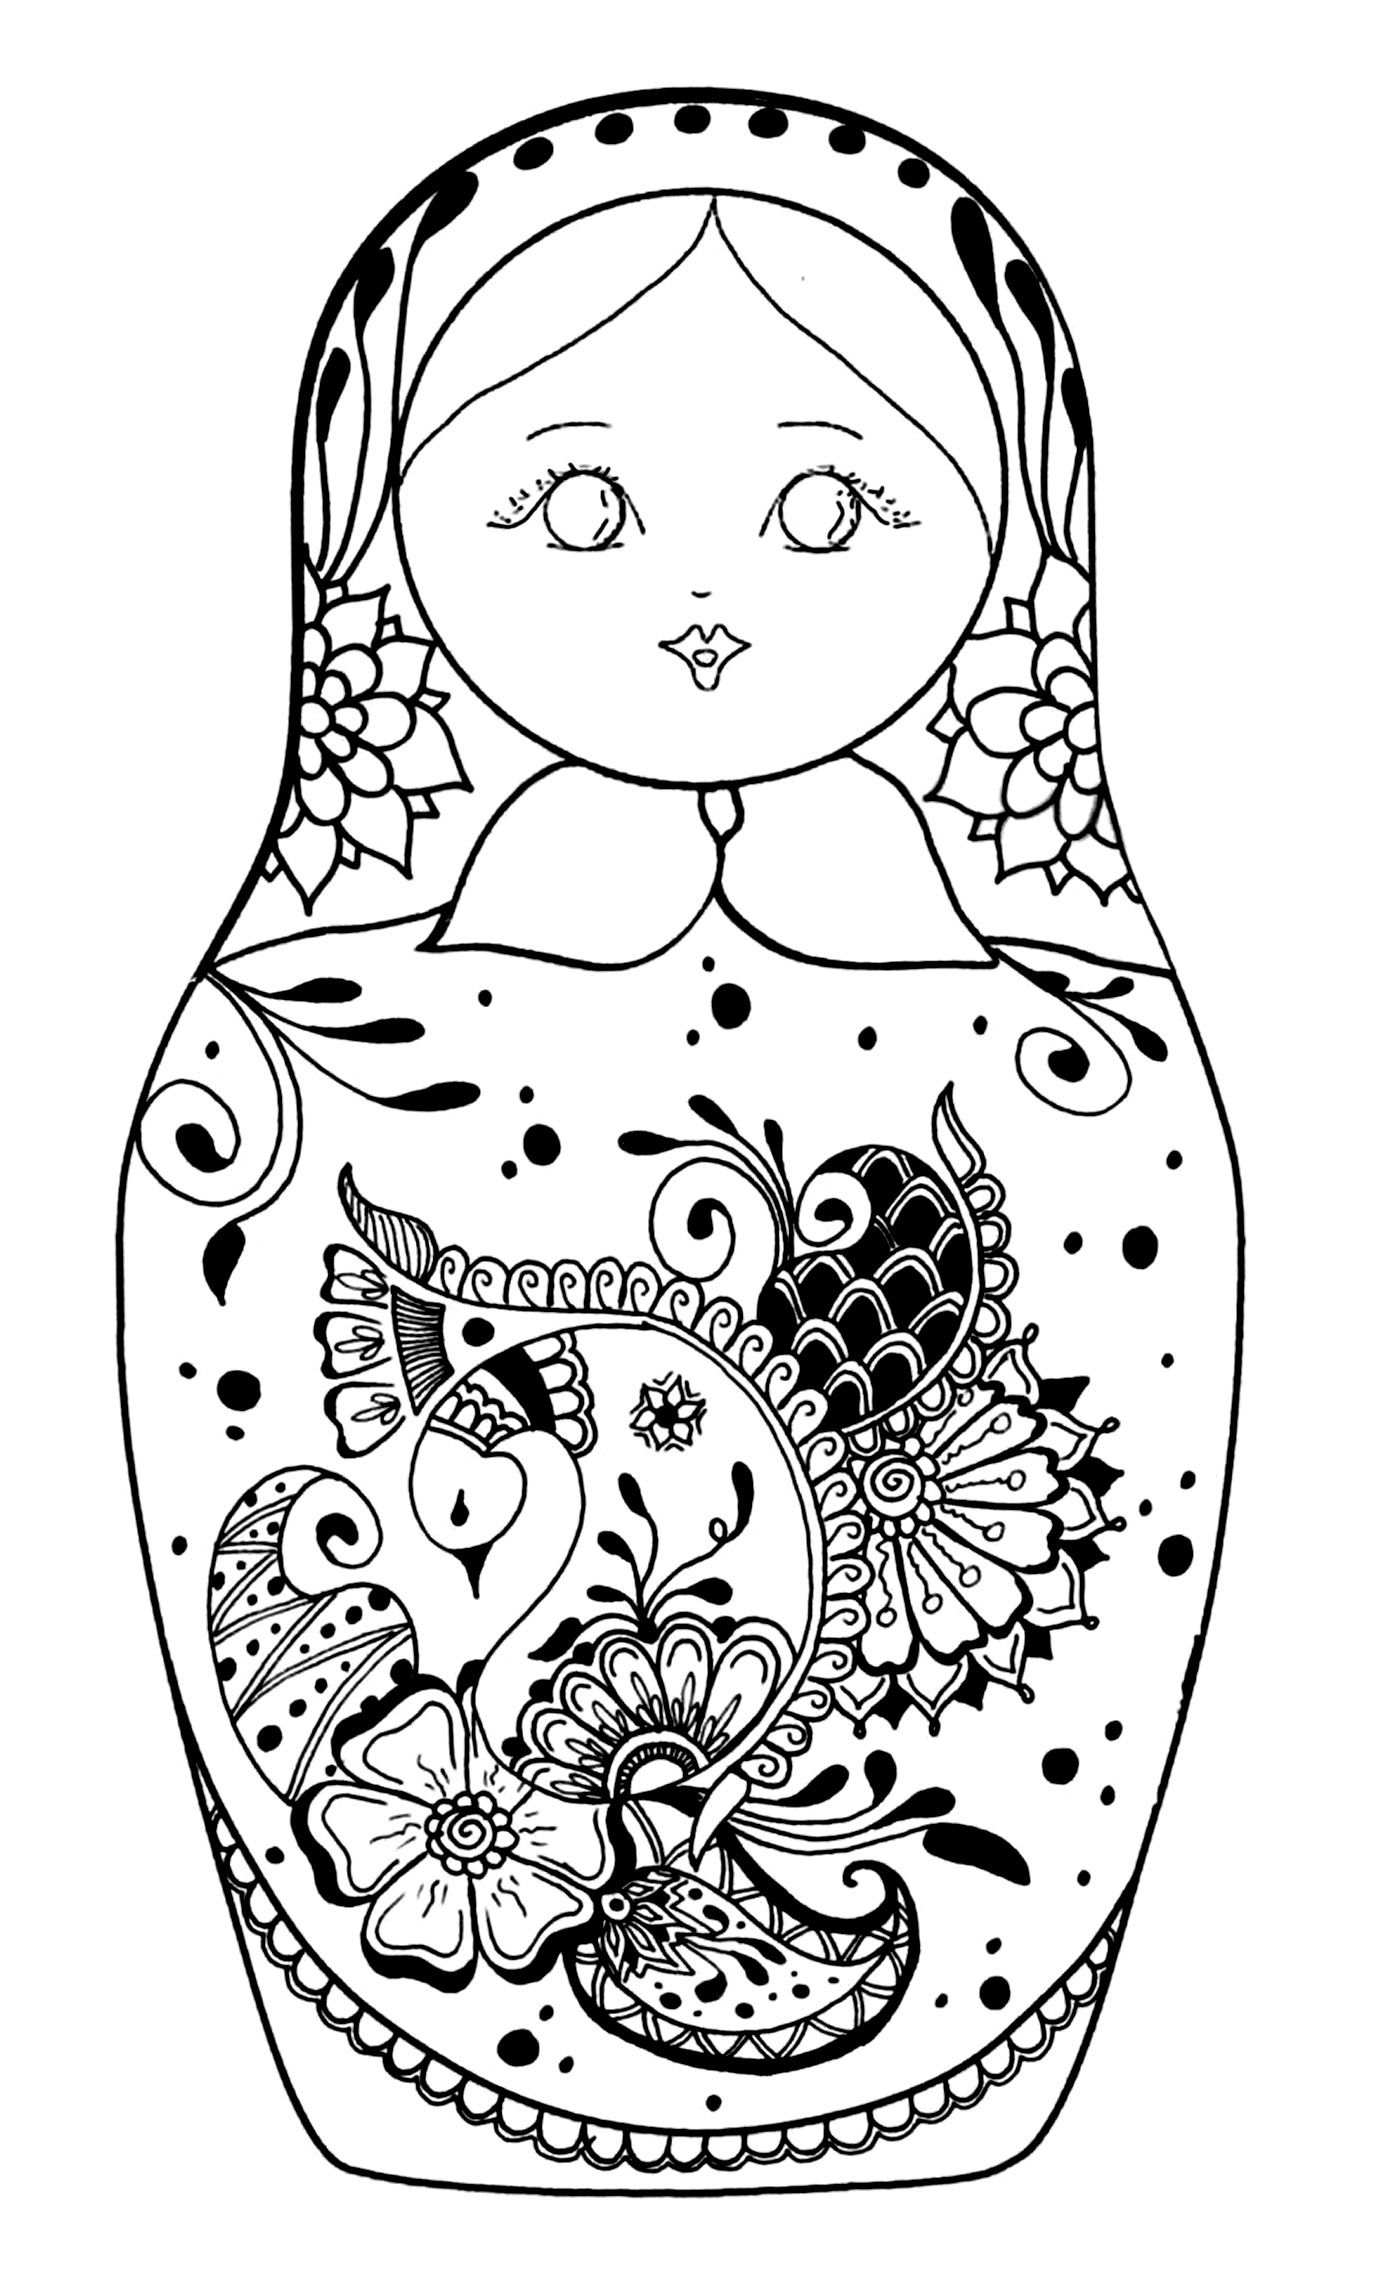 Discover Our Gallery Of Coloring Pages Inspired By Russian Dolls